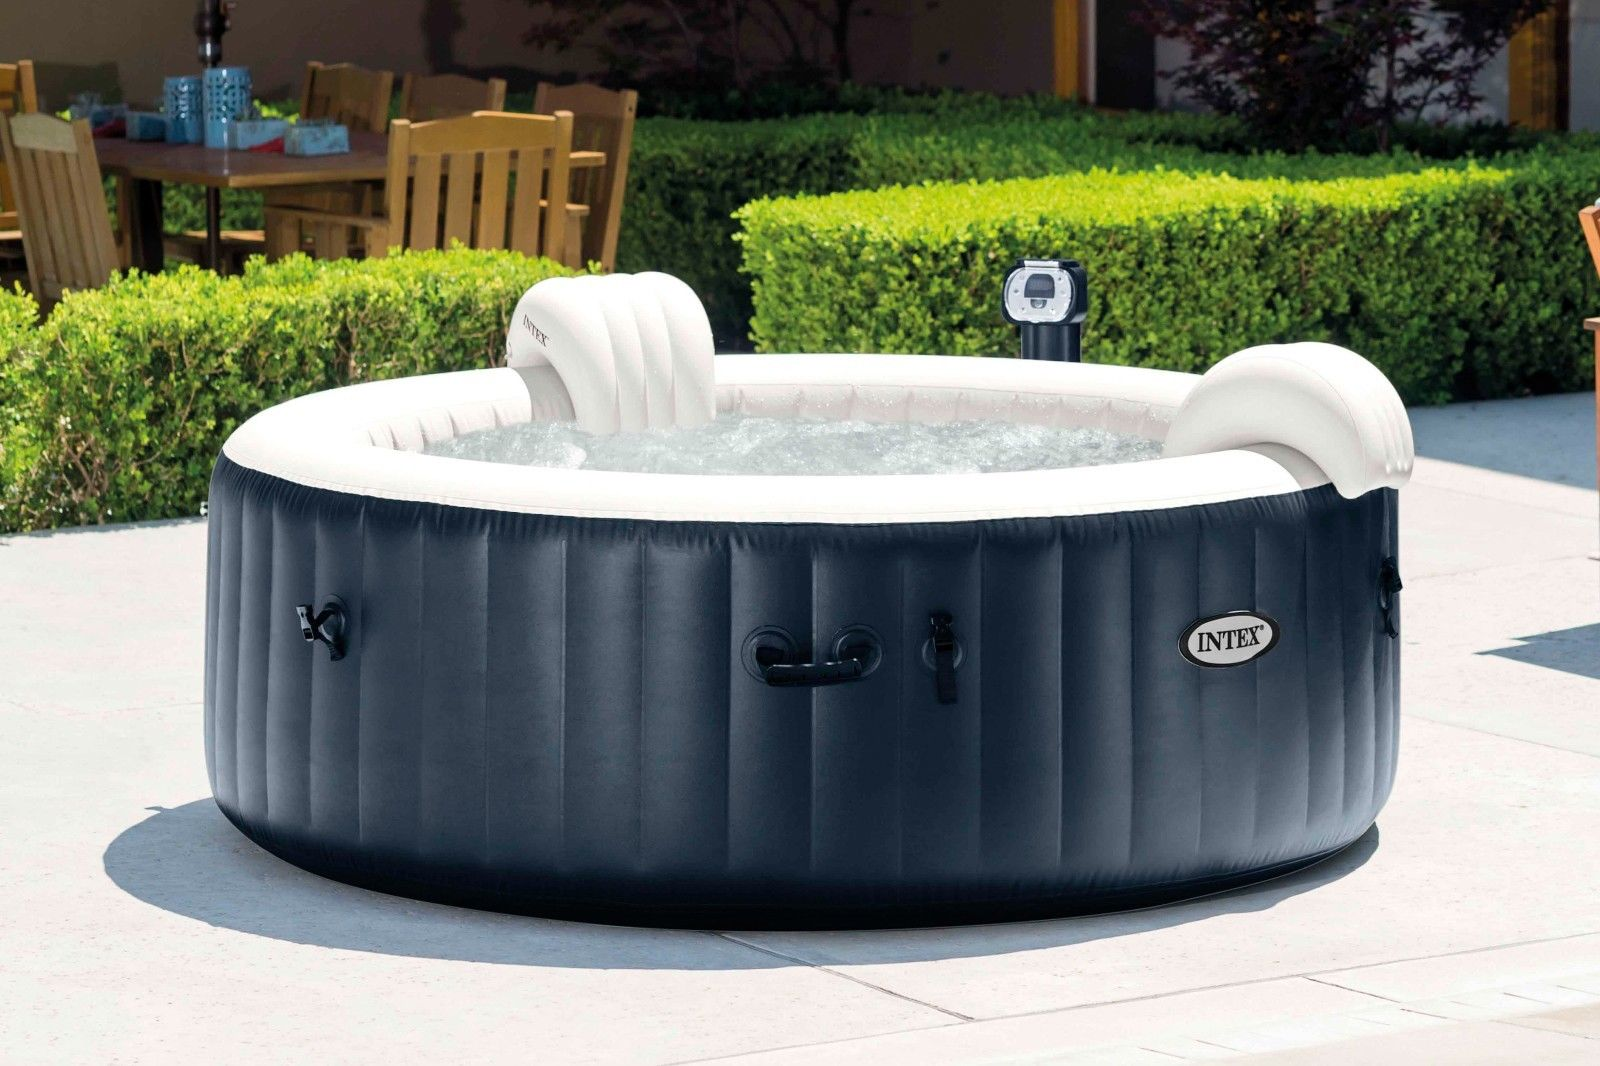 intex pure spa 4 person inflatable portable heated bubble hot tub model 28405e ebay. Black Bedroom Furniture Sets. Home Design Ideas